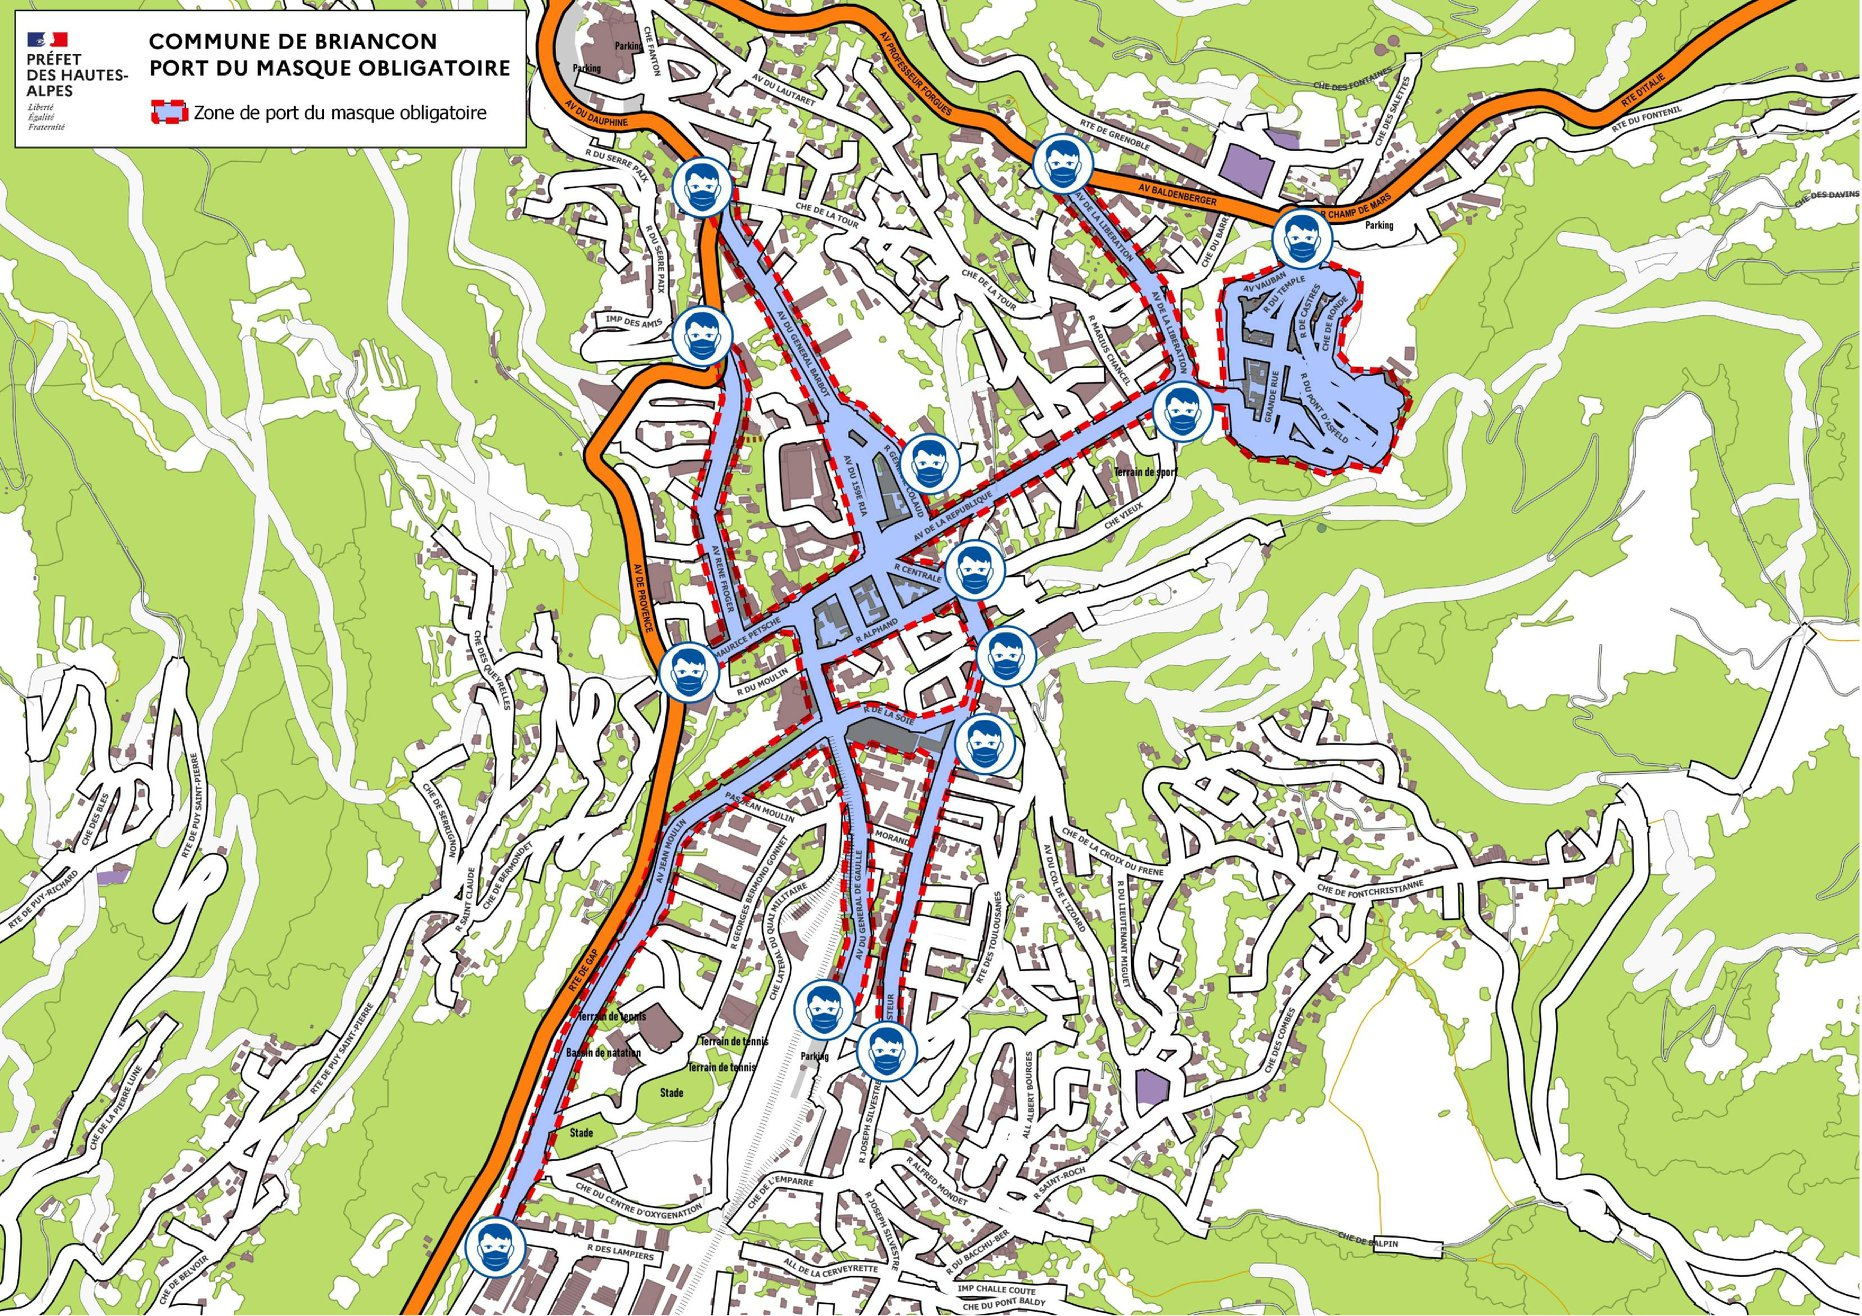 plan_zones_port_du_masque_obligatoire_briancon.jpg